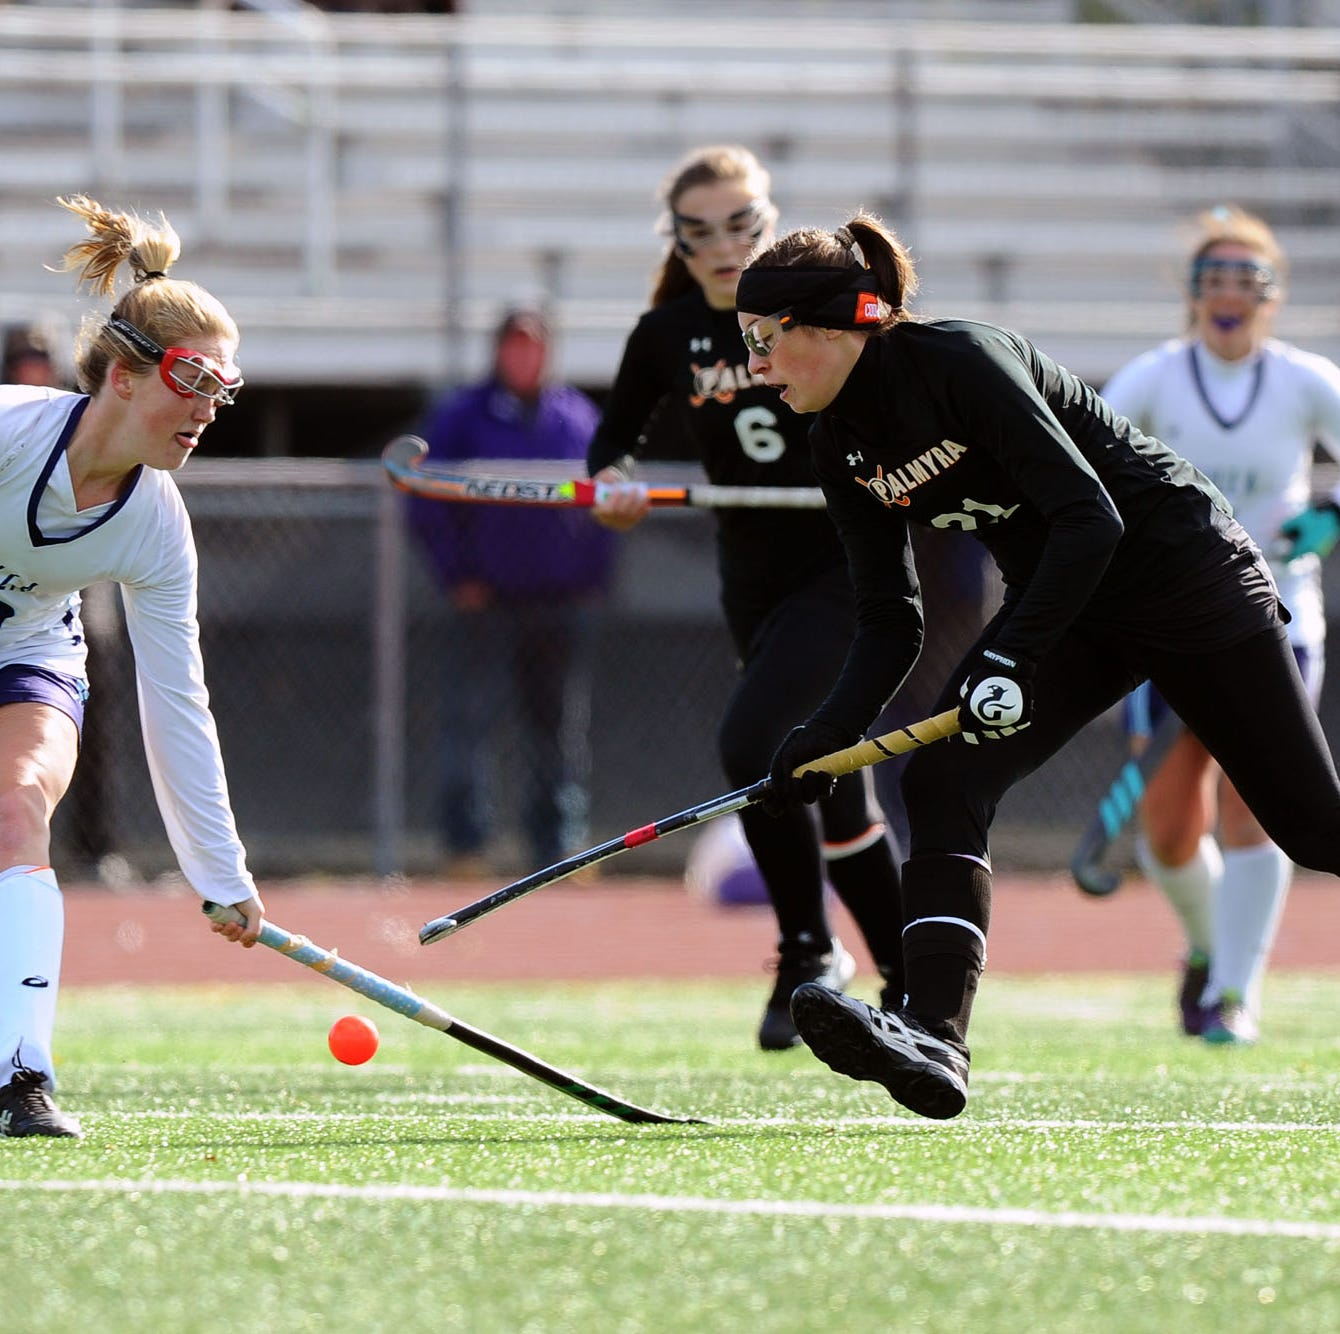 Palmyra field hockey's Lauren Wadas excited for national indoor team opportunity